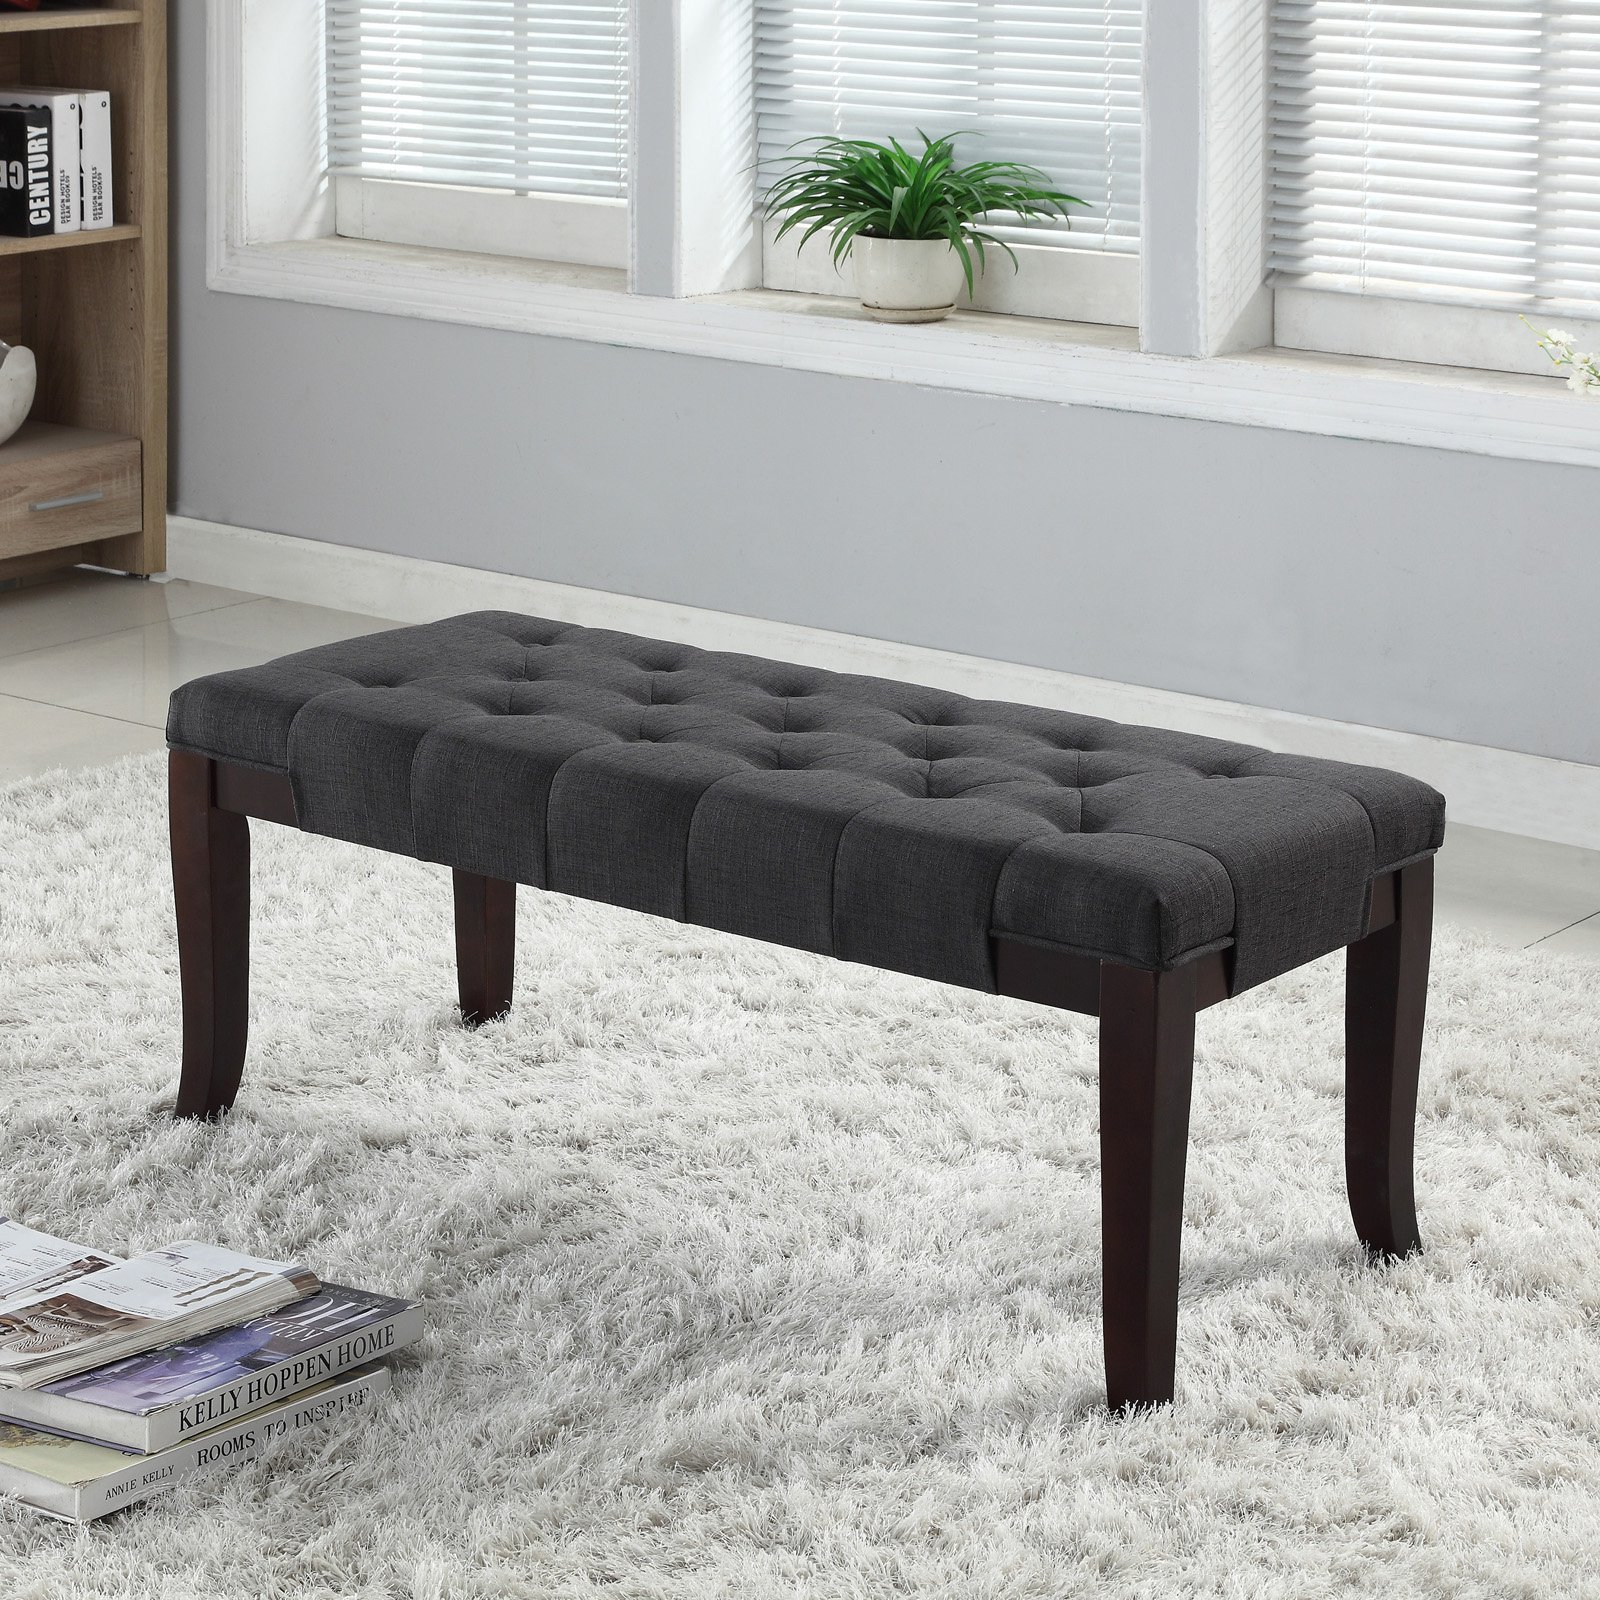 Roundhill Furniture Linon Leather Tufted Bench, Multiple Colors